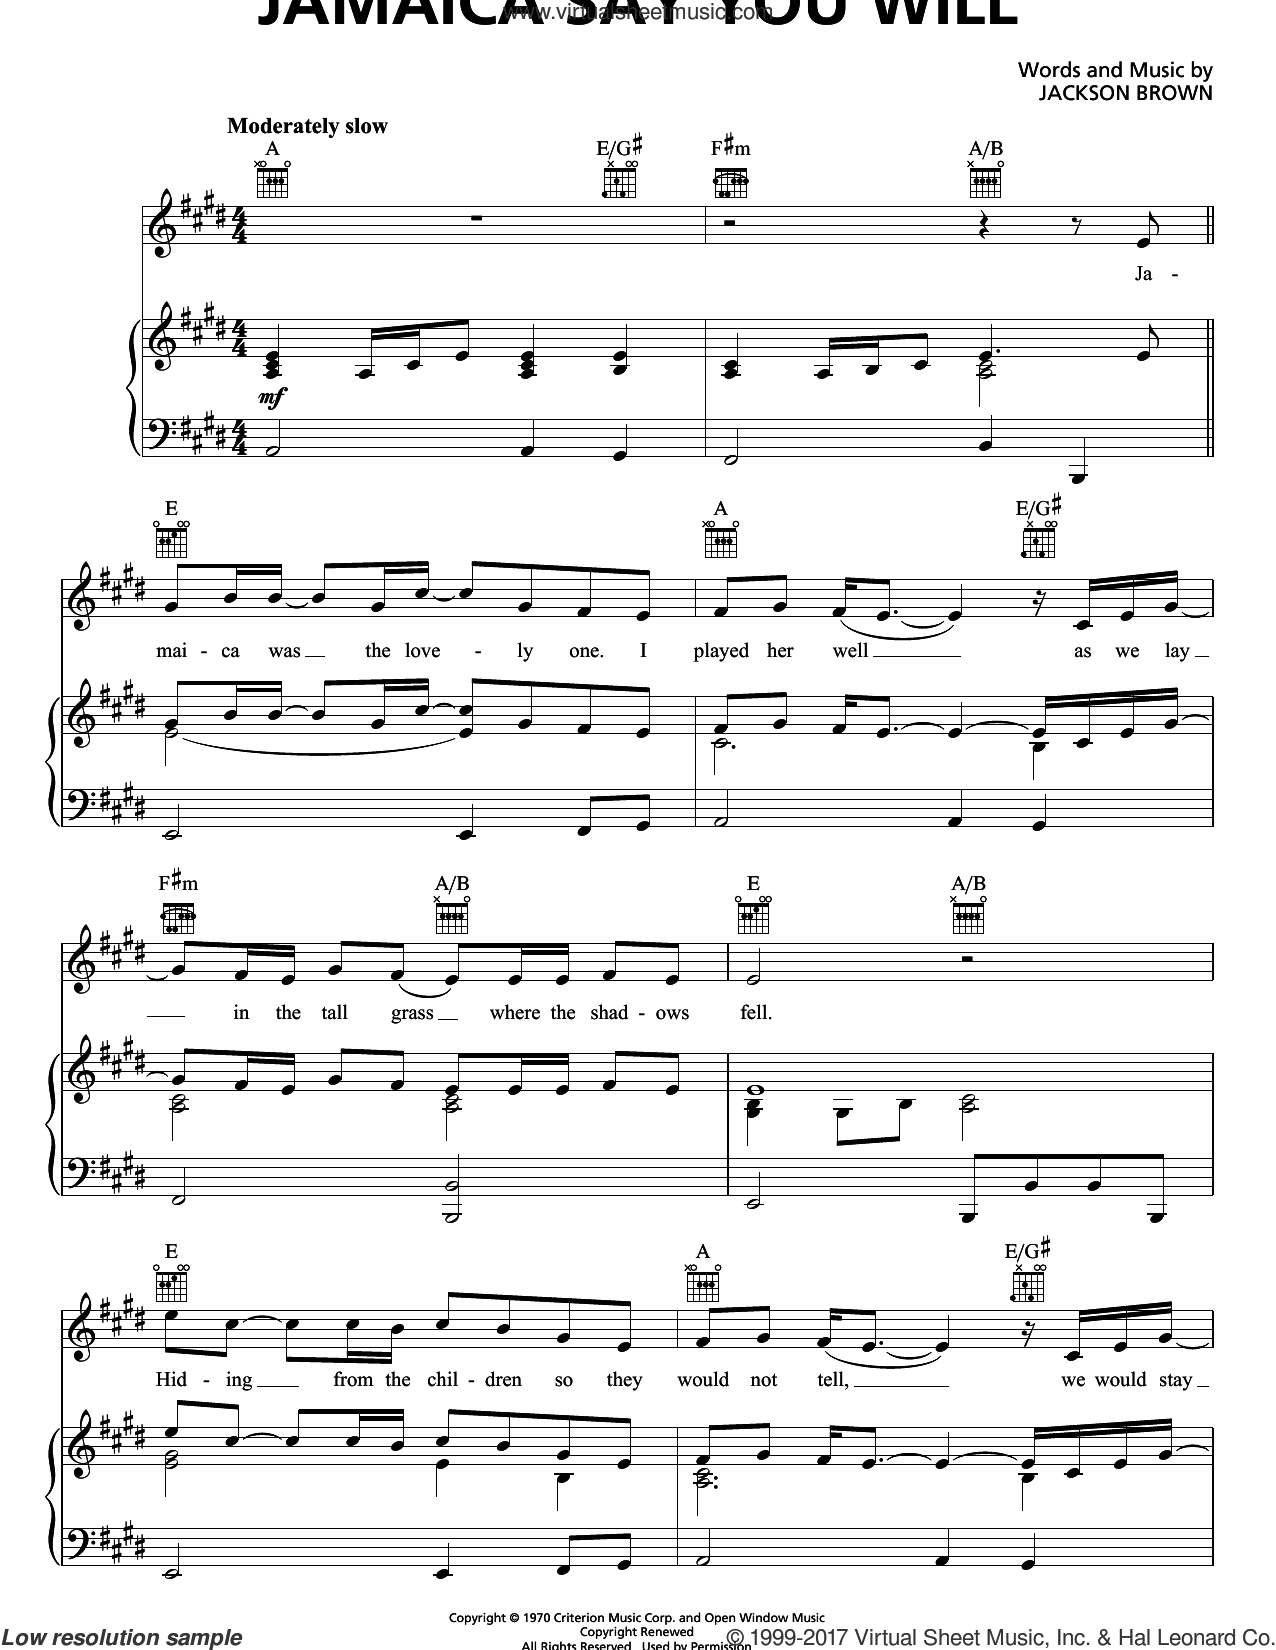 Jamaica Say You Will sheet music for voice, piano or guitar by Jackson Browne, intermediate skill level